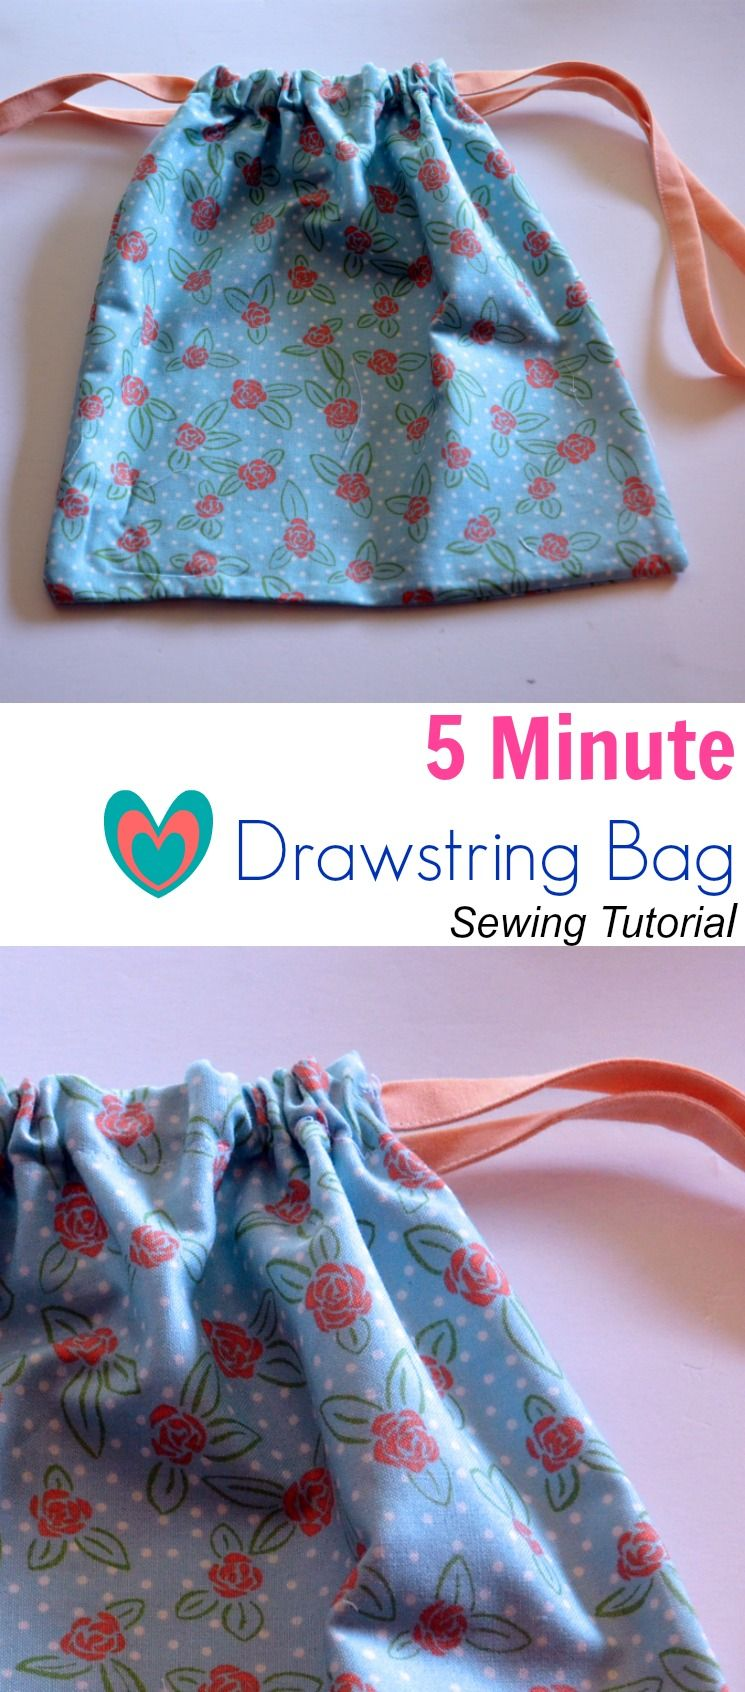 5 Minute Drawstring Bag Sewing Tutorial  Learn how to make this quick and  easy sewing project. 5 minutes ideal for beginner sewists! f56722b6dfe0e